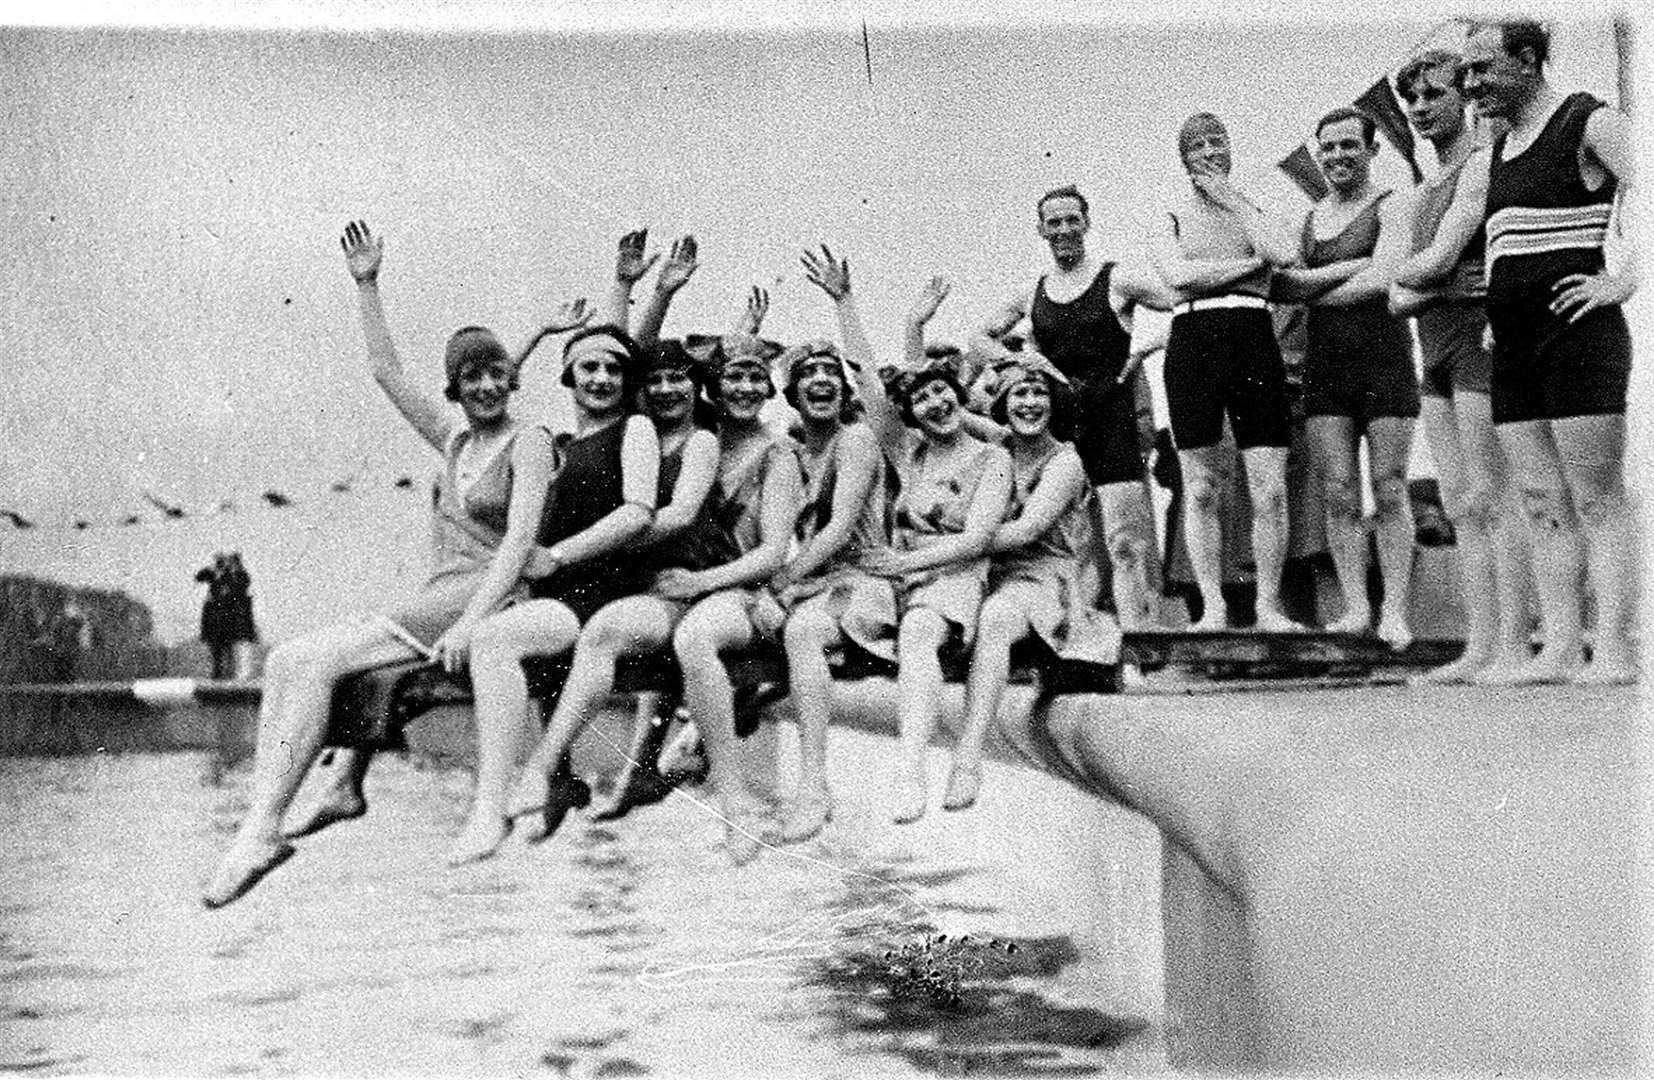 Part of the grand opening of the new Clifton Baths, later Lido, swimming pool in 1927 Picture: Bill Evans